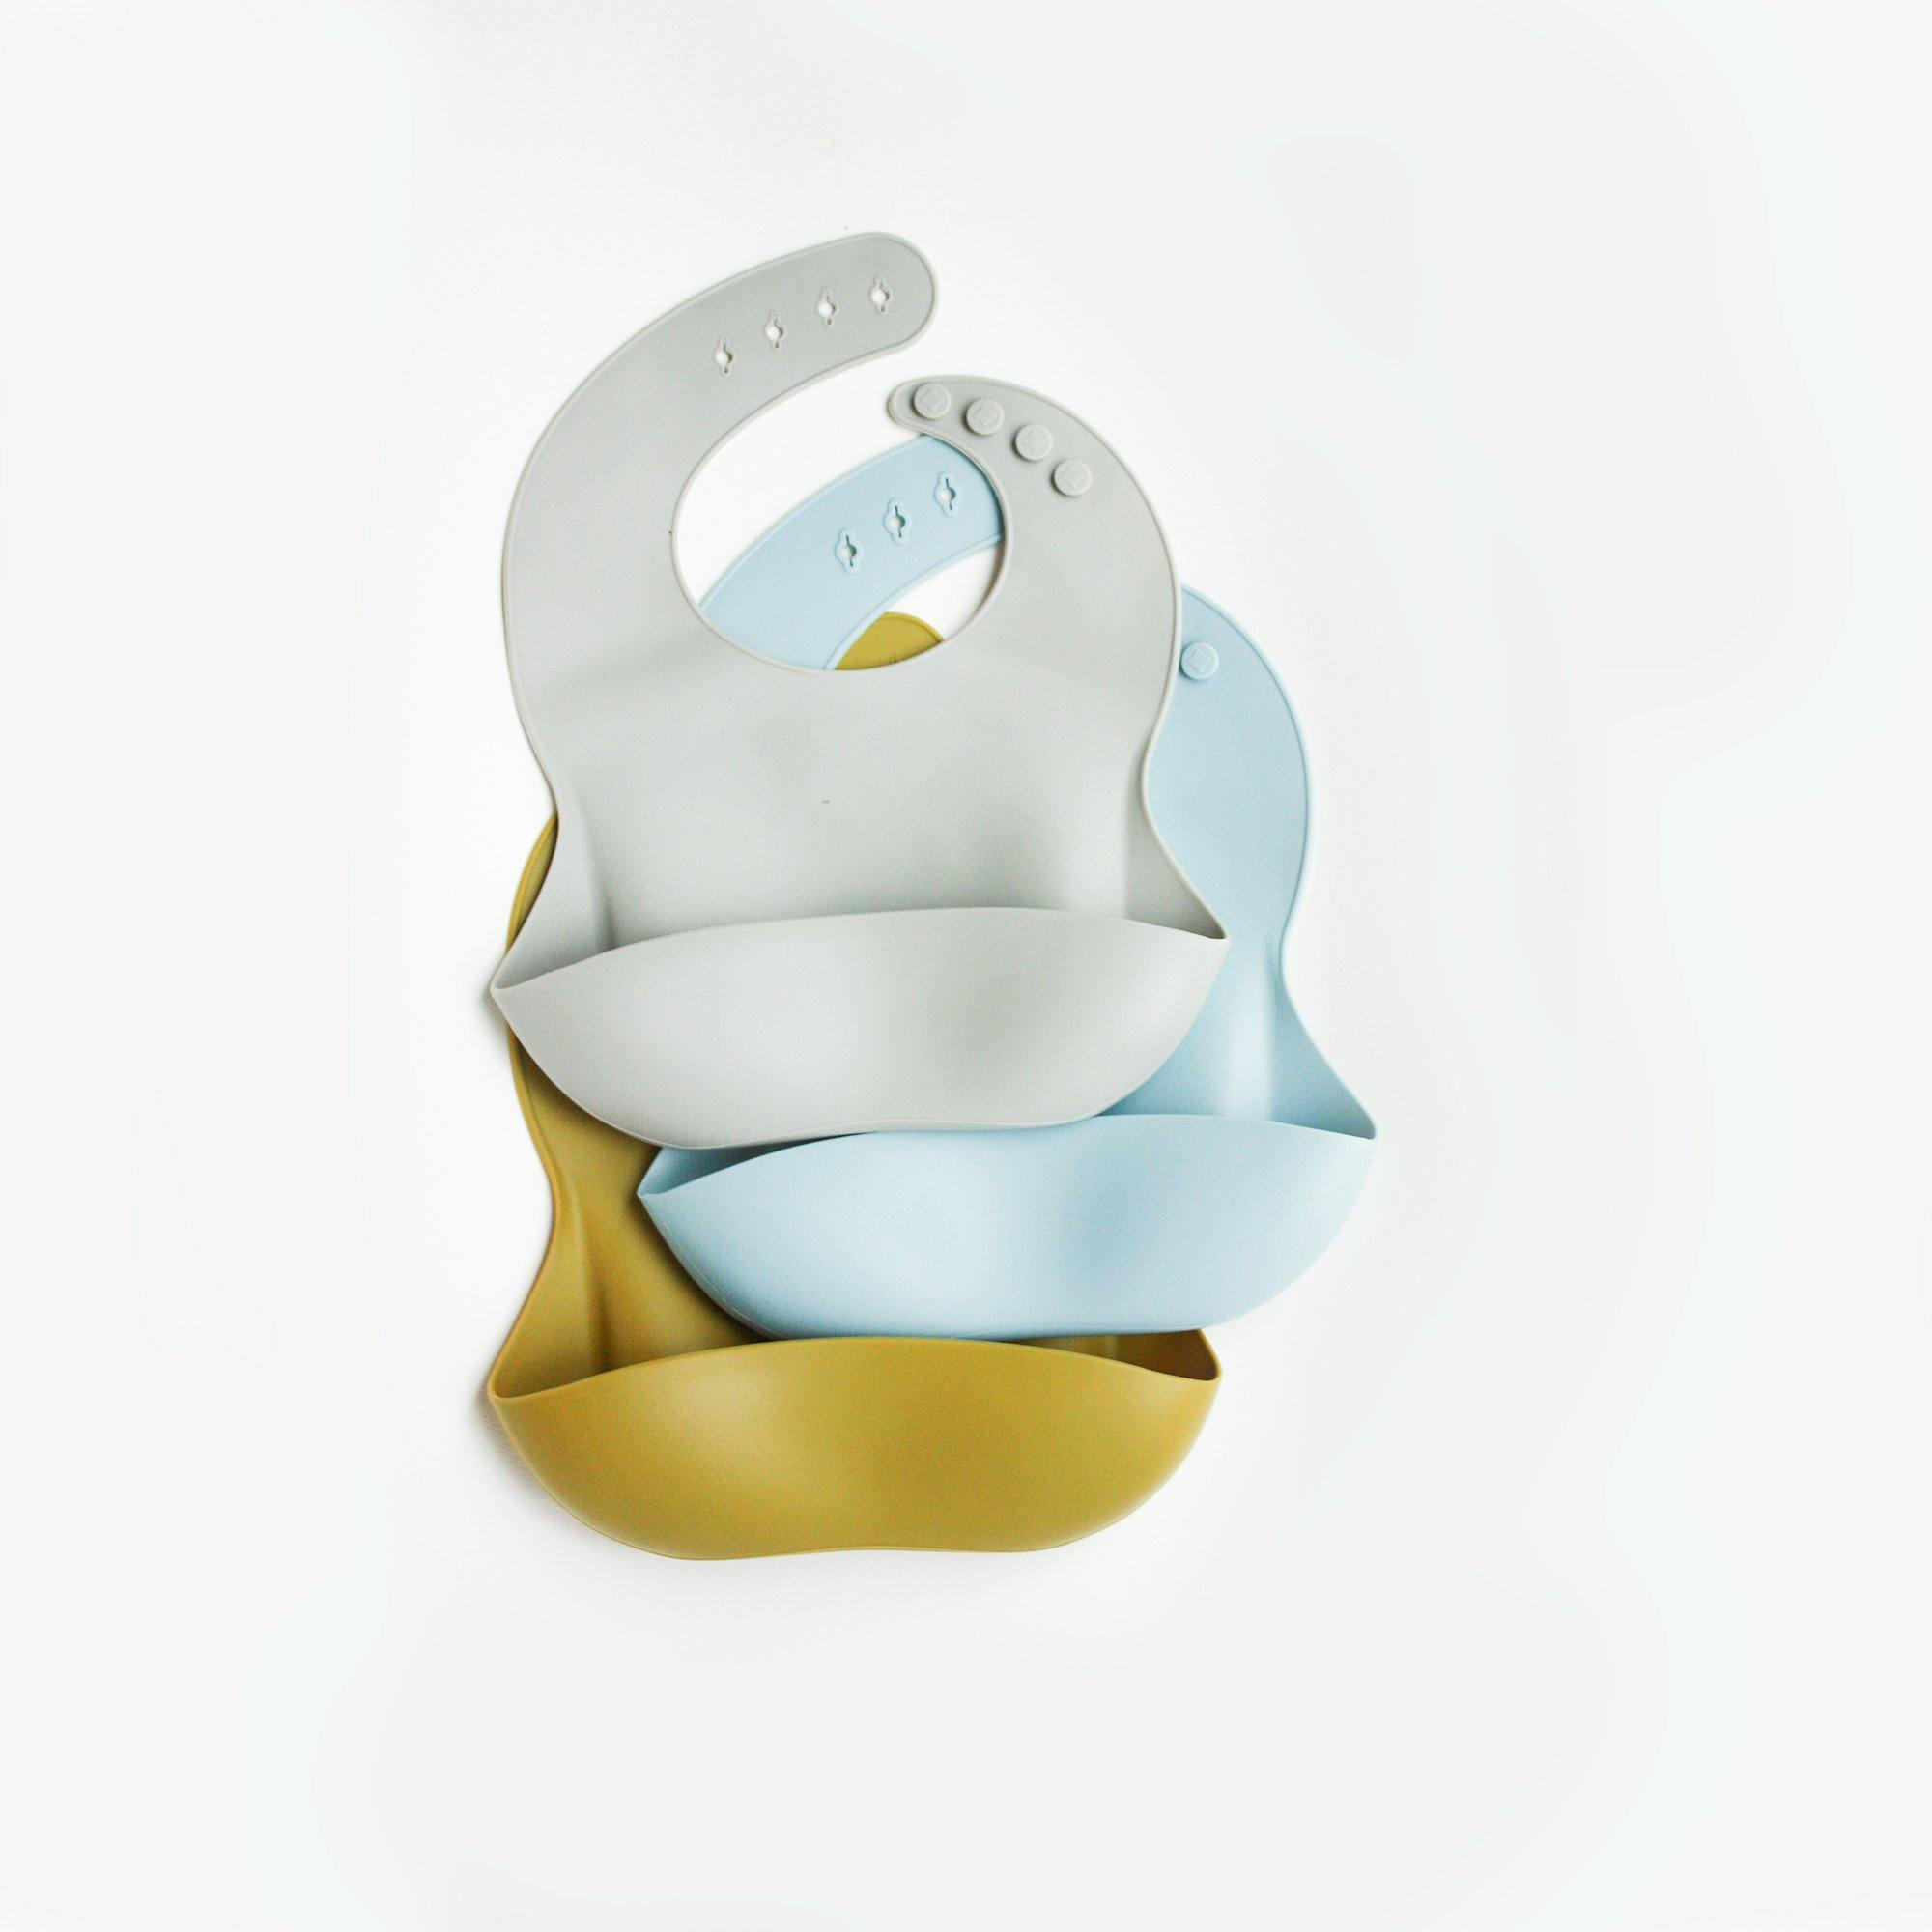 Silicone Feeding Bib in Sleepy blue - Our Story Paper Co.